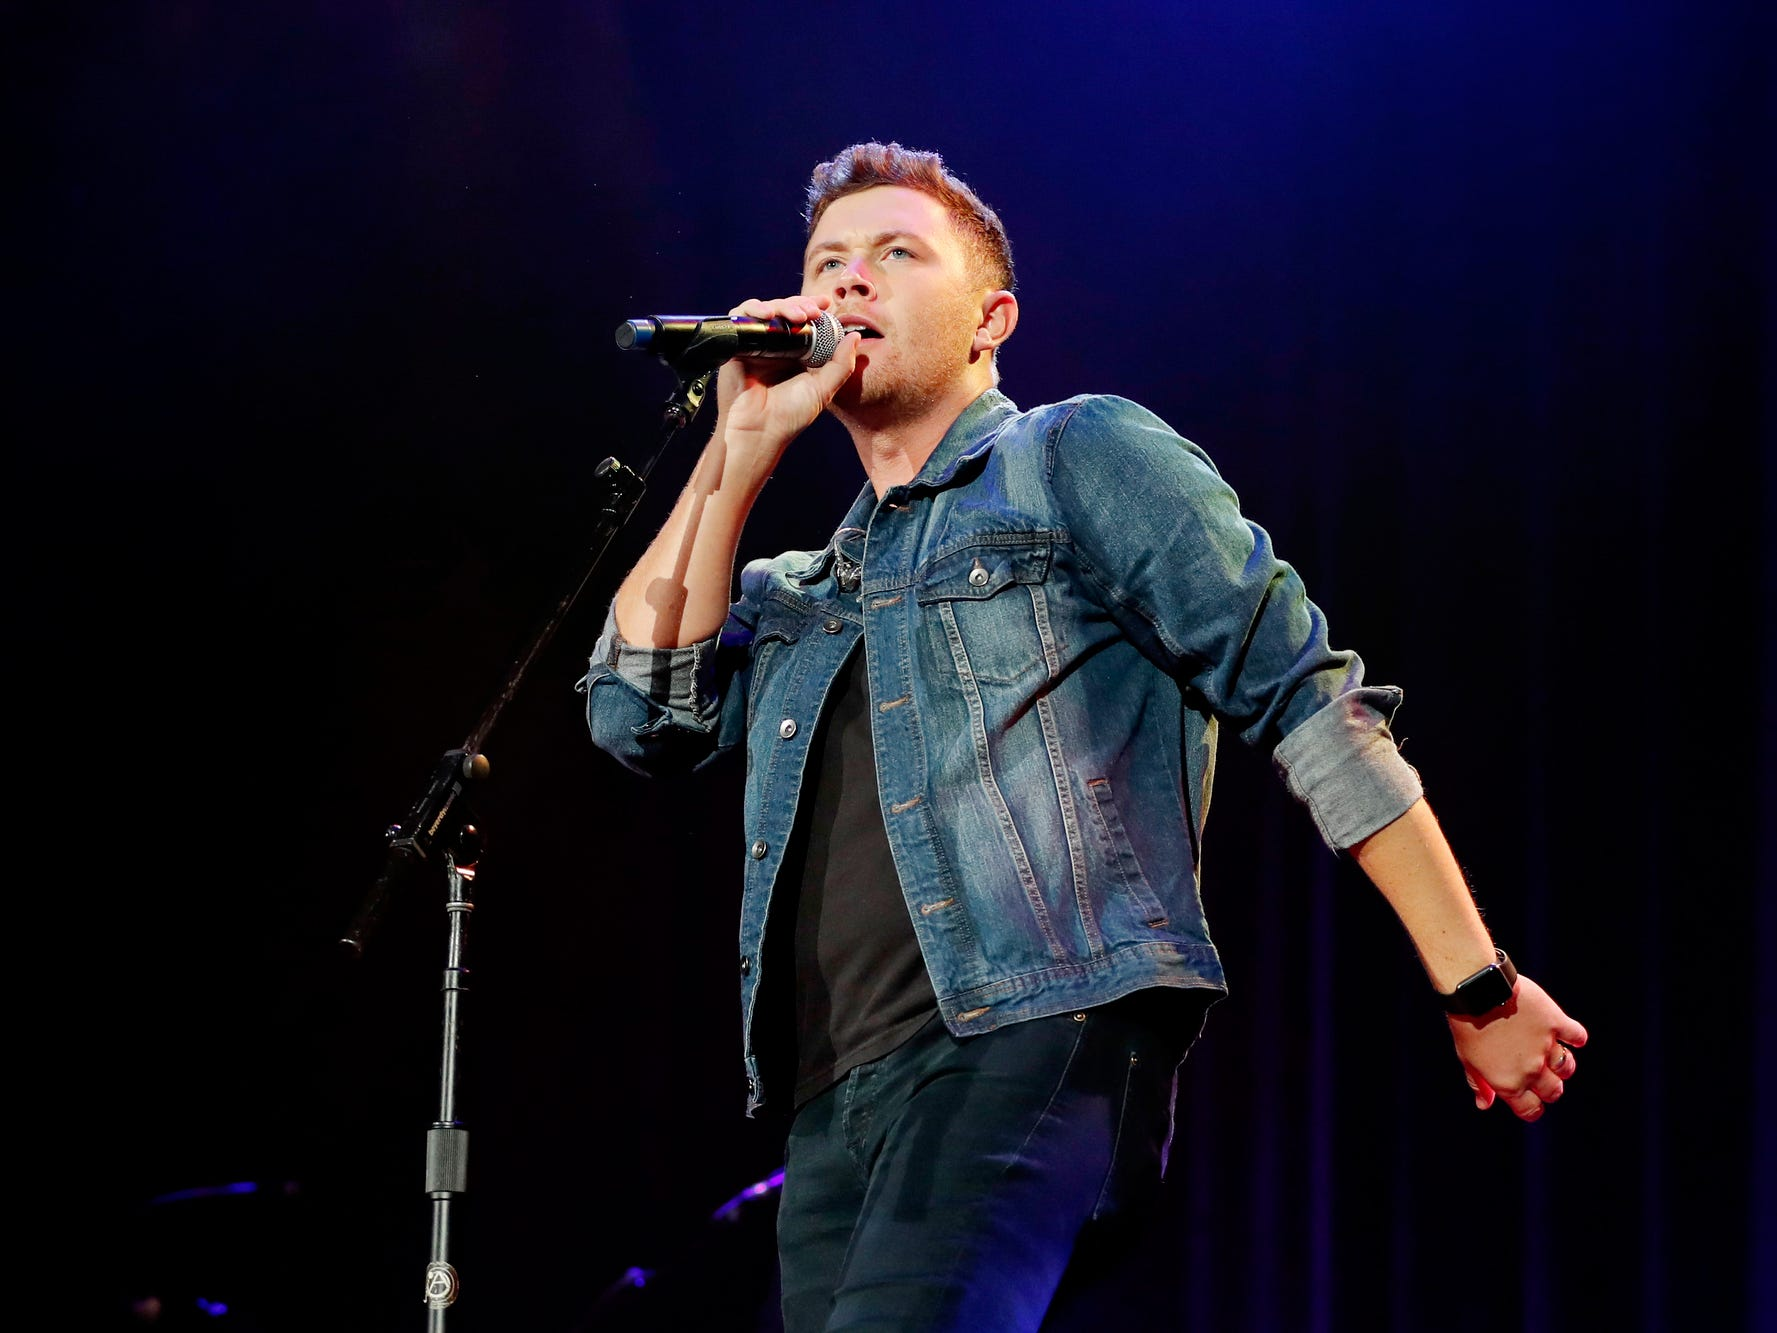 OCT. 4